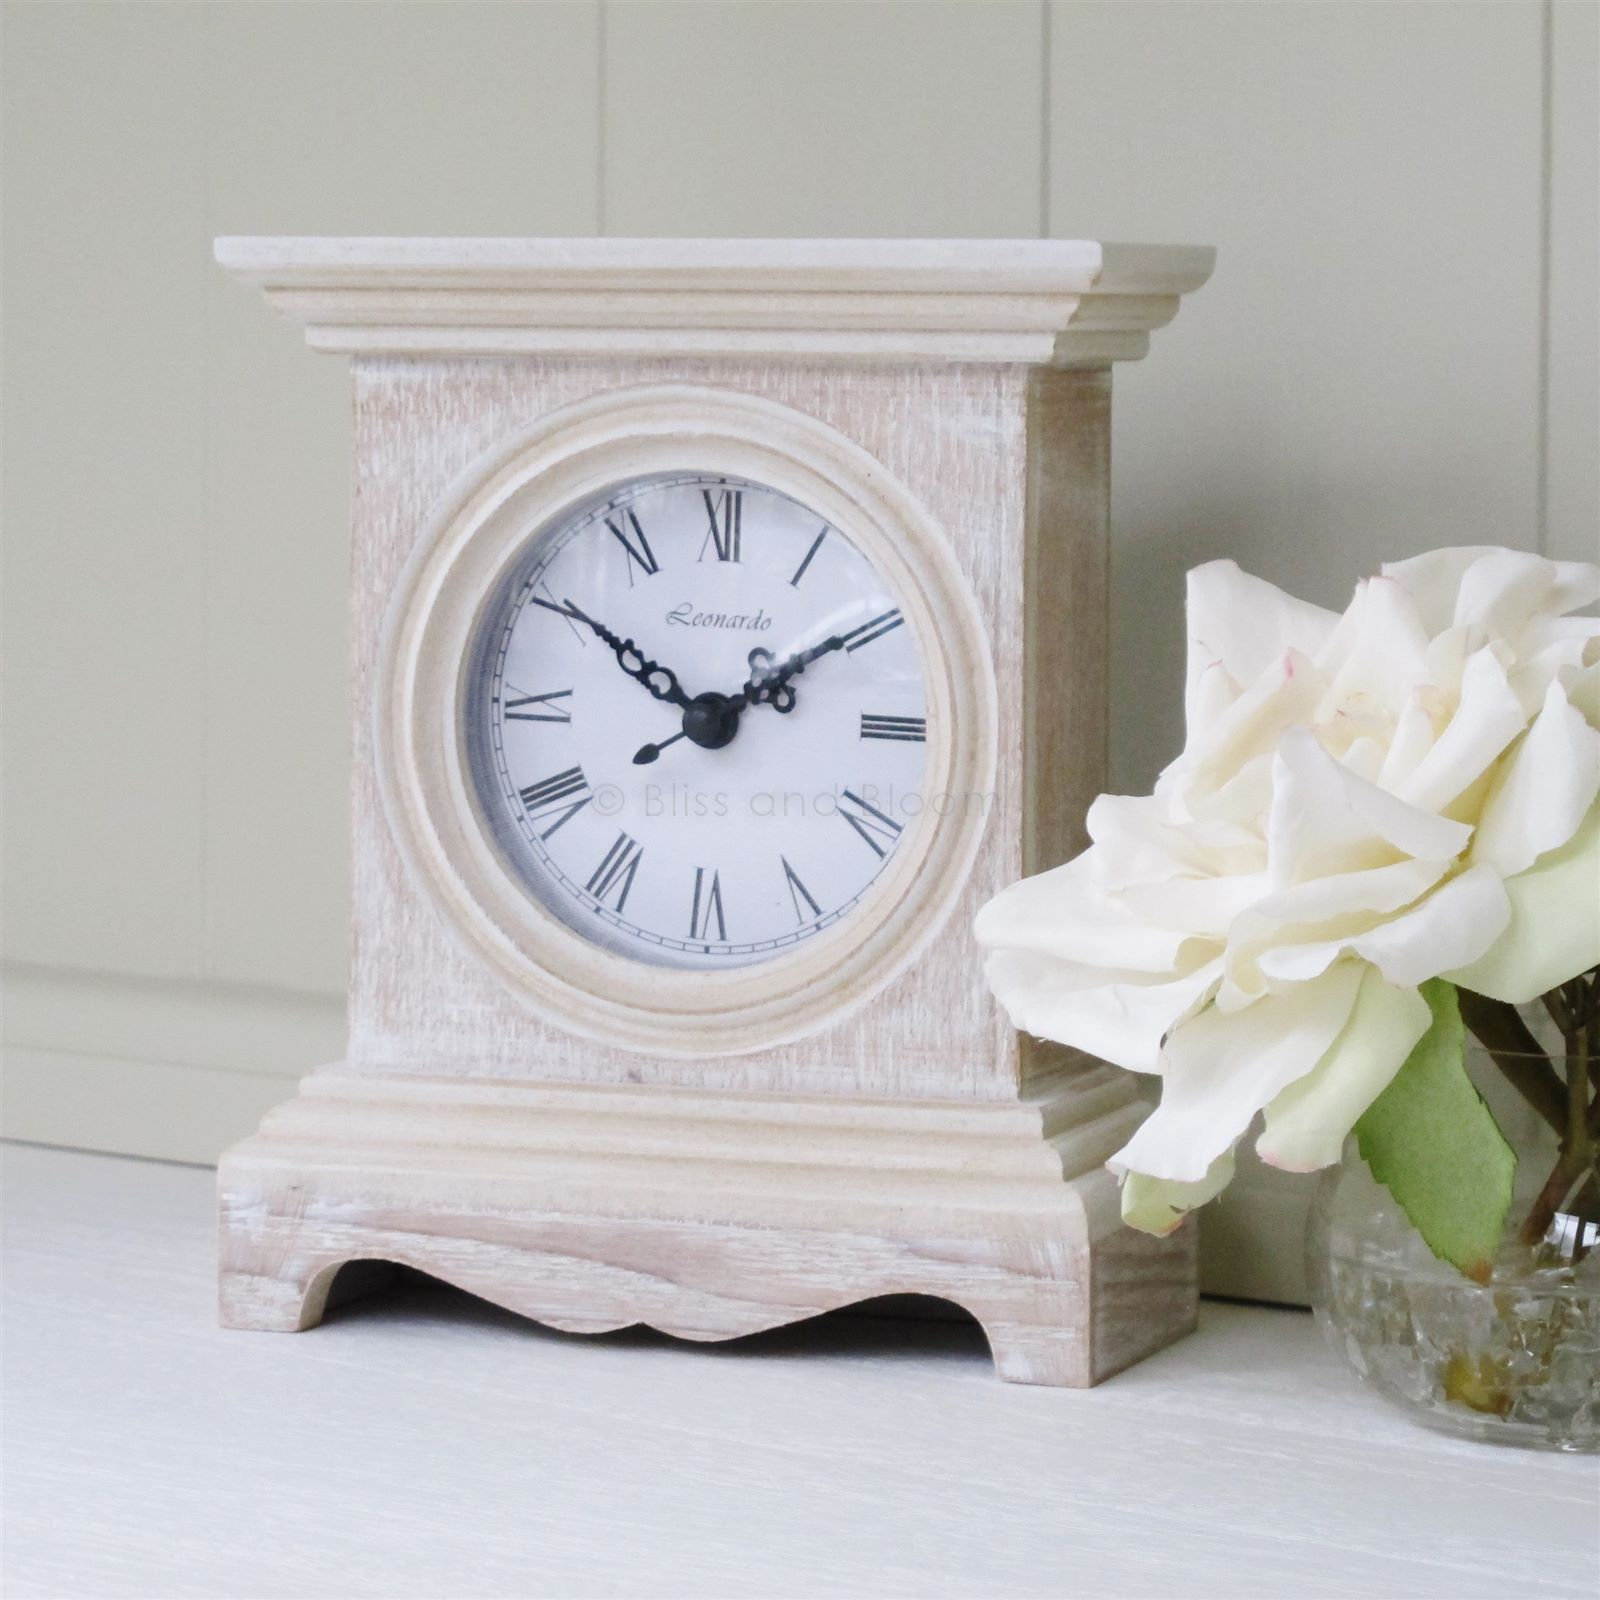 Natural Wooden Mantel Clock With A White Wash 14 99 From Www Blissandbloom Co Uk Wooden Mantel Clock Mantel Clocks